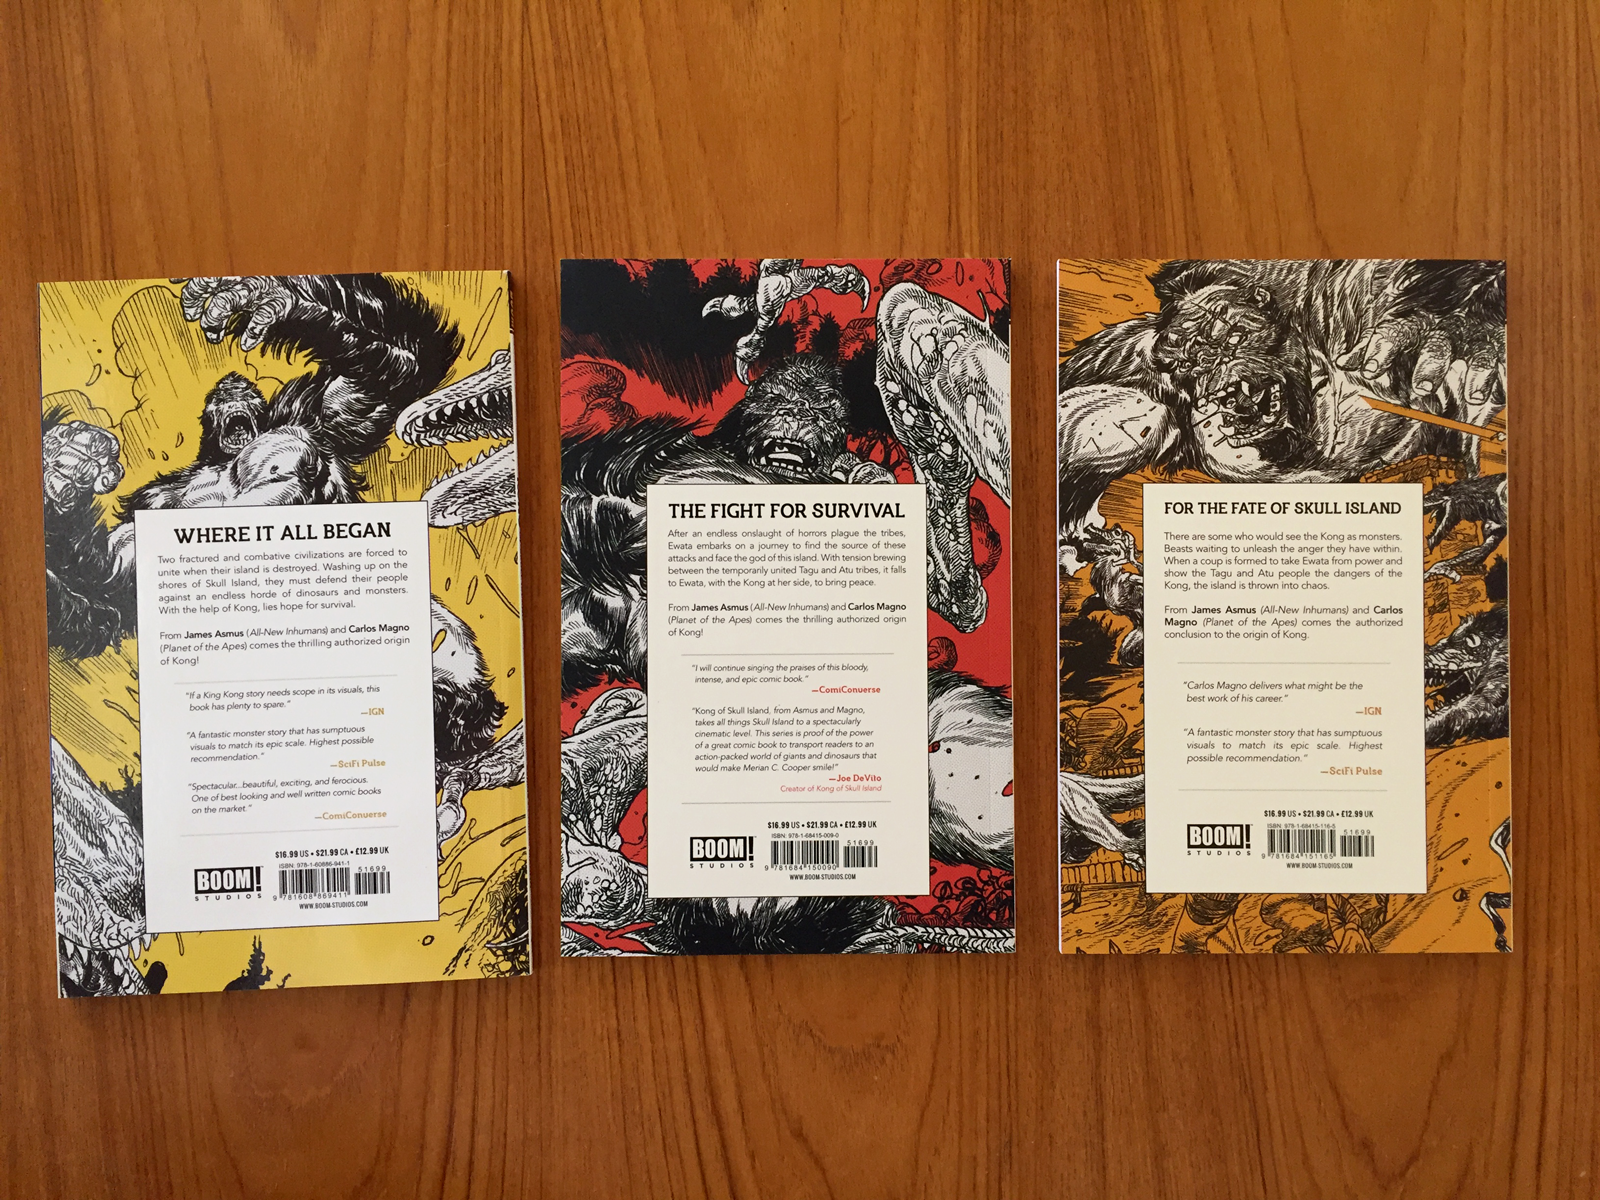 The back covers for volumes 1, 2 and 3